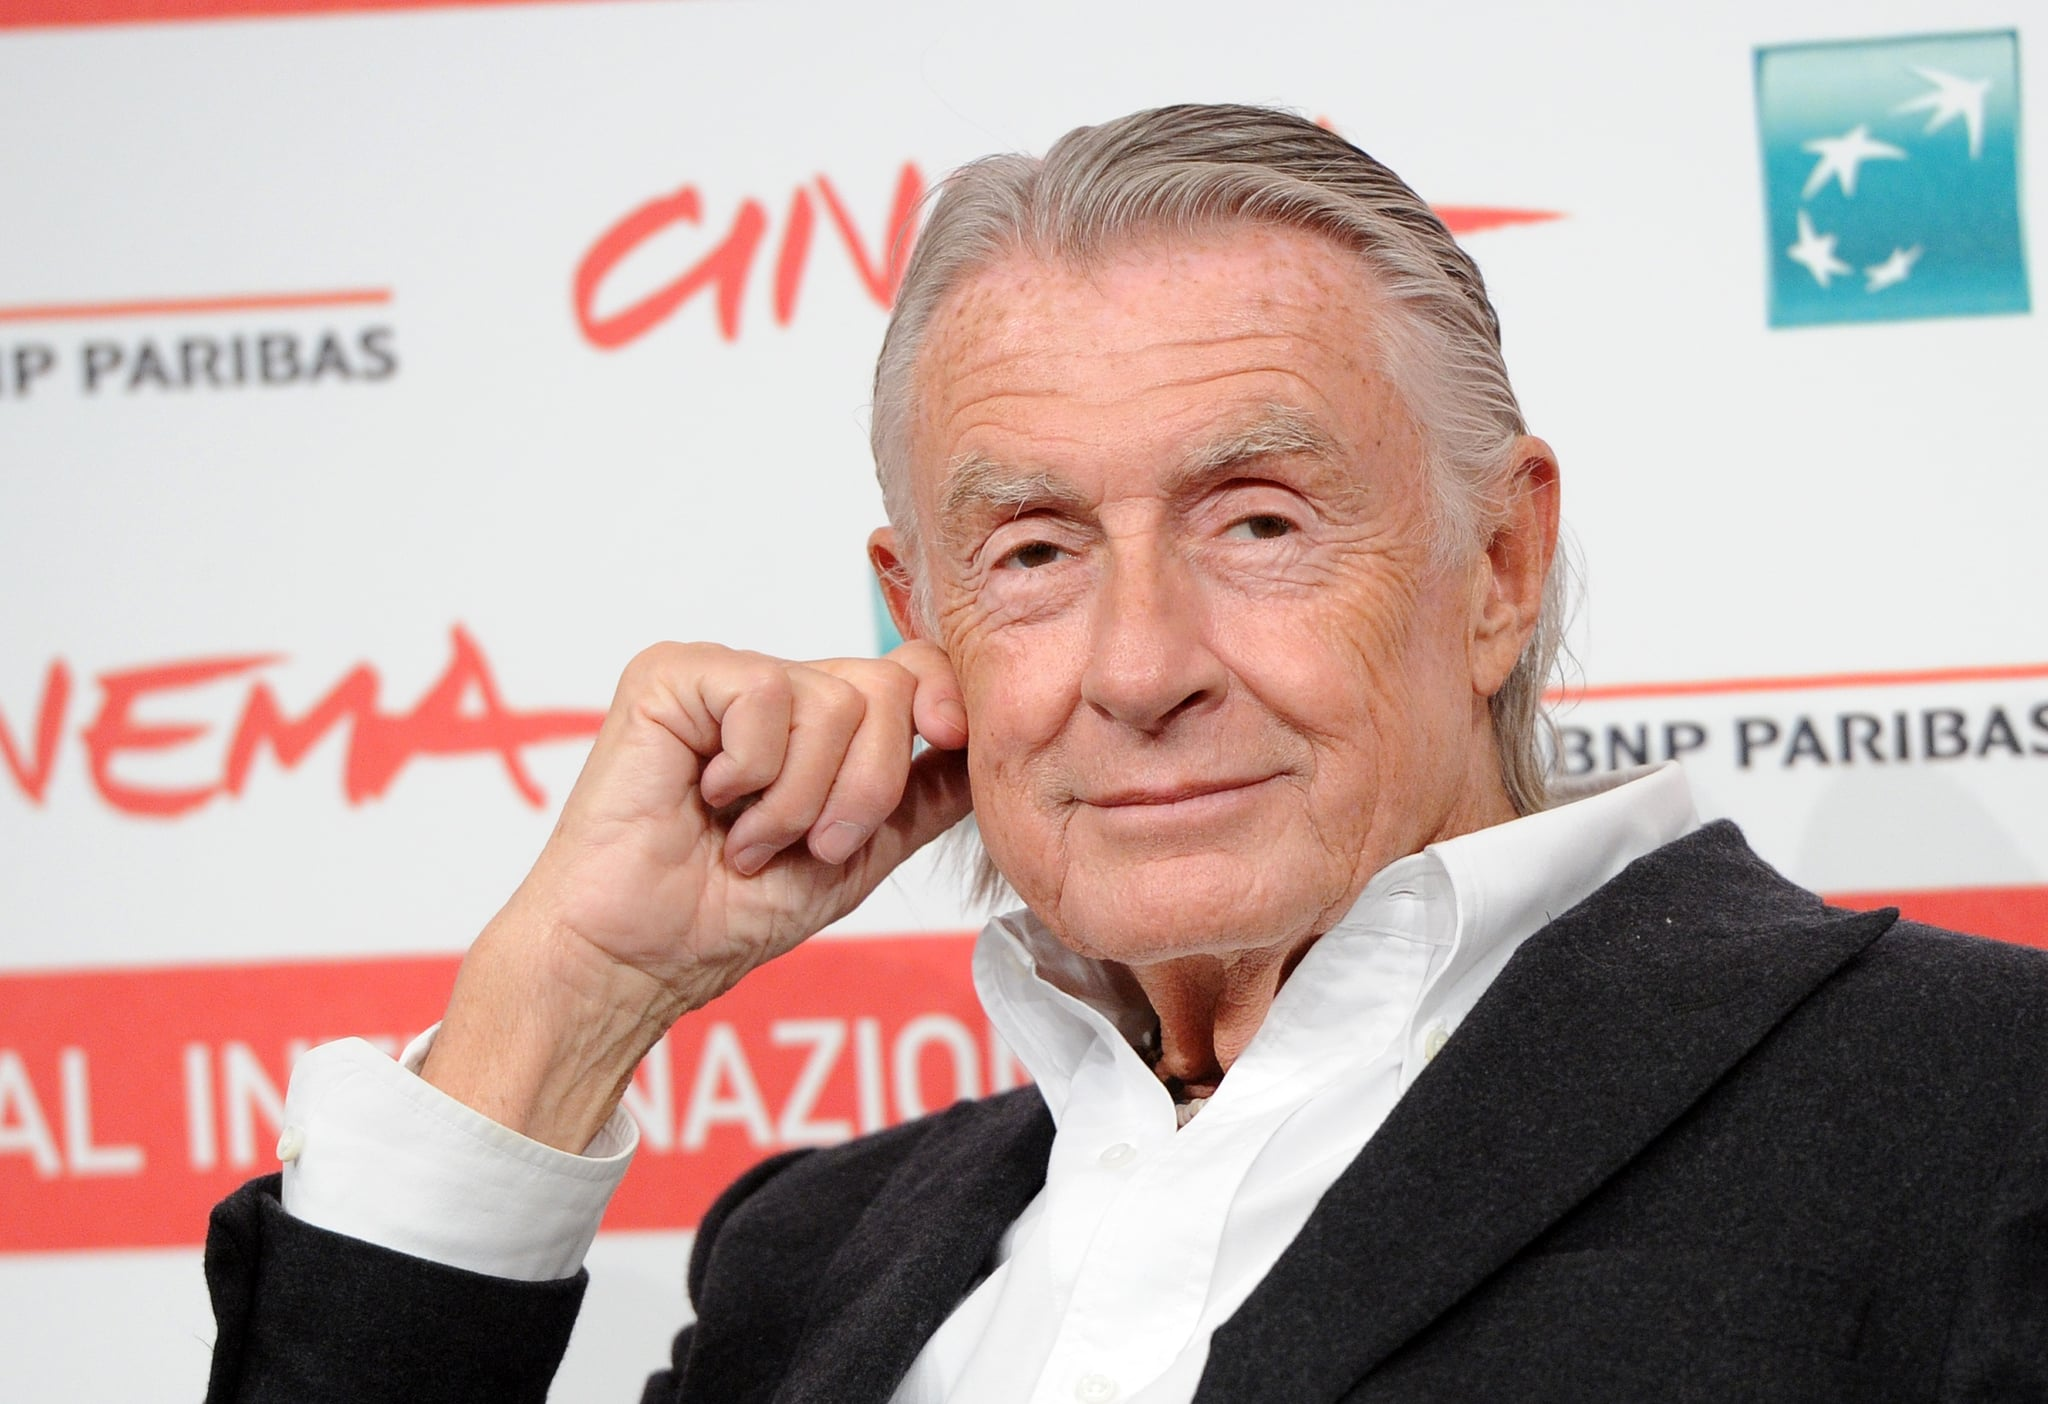 ROME, ITALY - NOVEMBER 03: Filmmaker Joel Schumacher poses at a photocall during the 6th International Rome Film Festival on November 3, 2011 in Rome, Italy. (Photo by MAURIX/Gamma-Rapho via Getty Images)